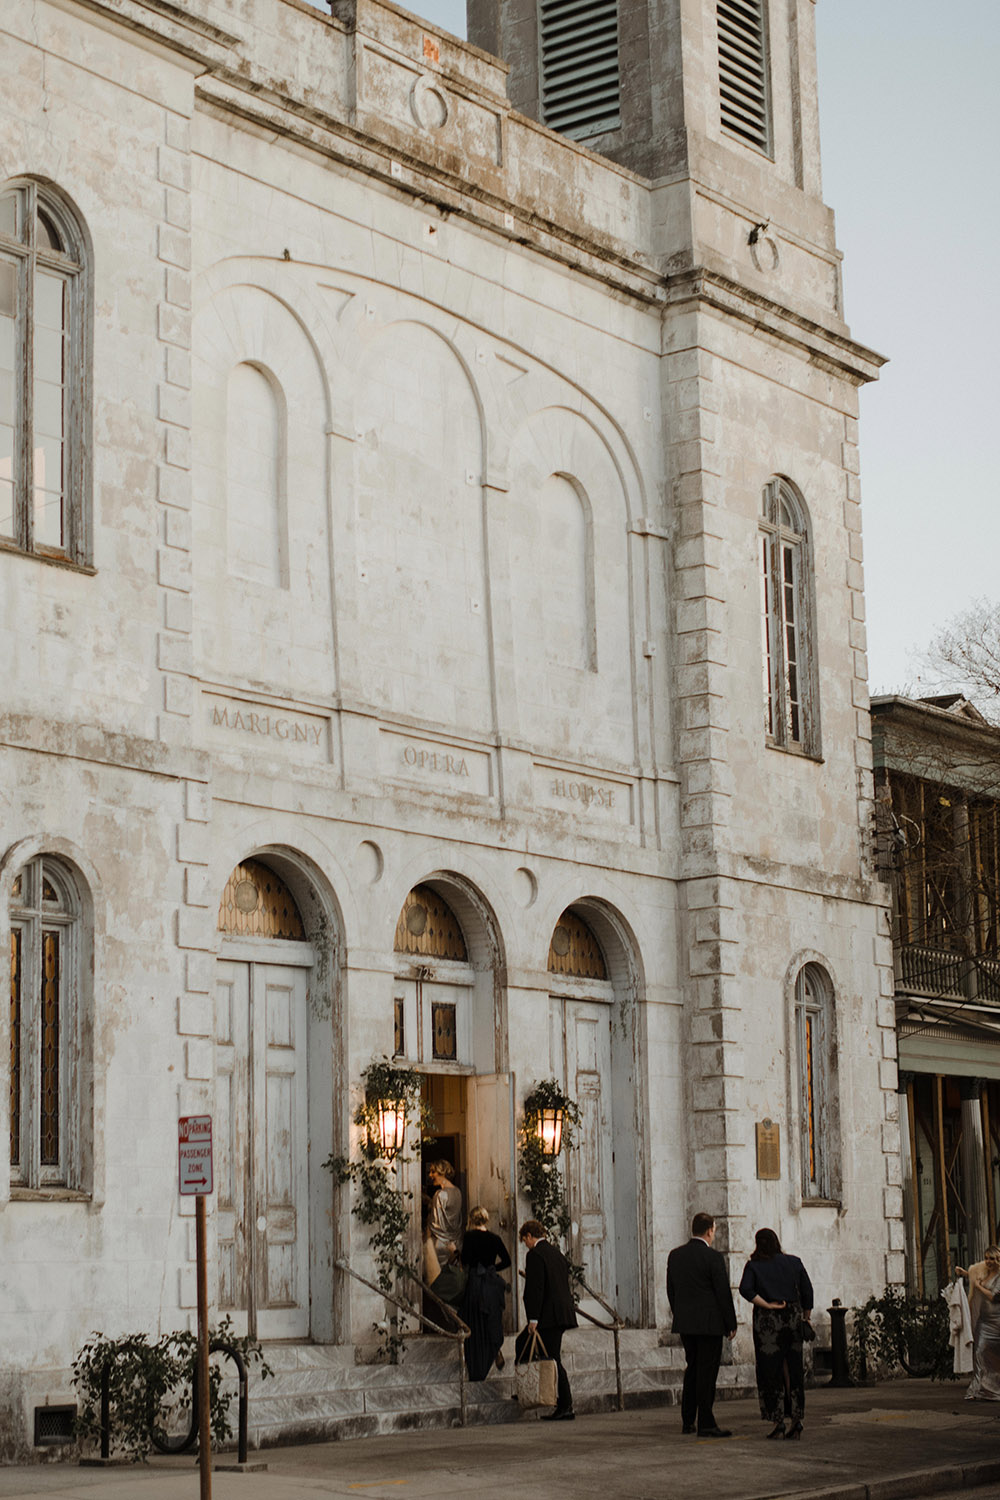 The Marigny Opera House in New Orleans.